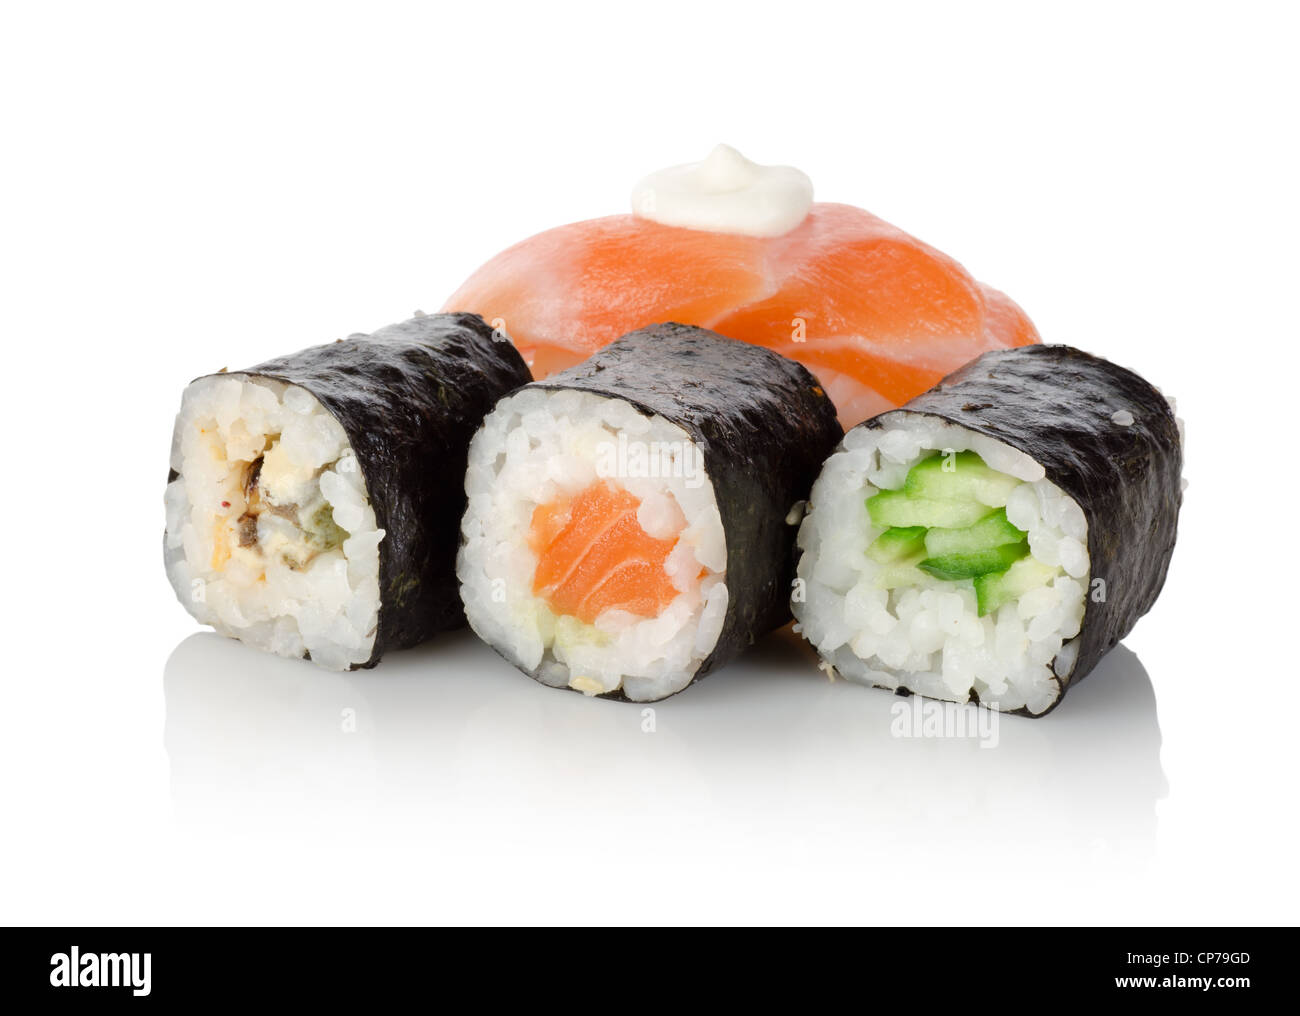 Sushi and rolls isolated on a white background - Stock Image